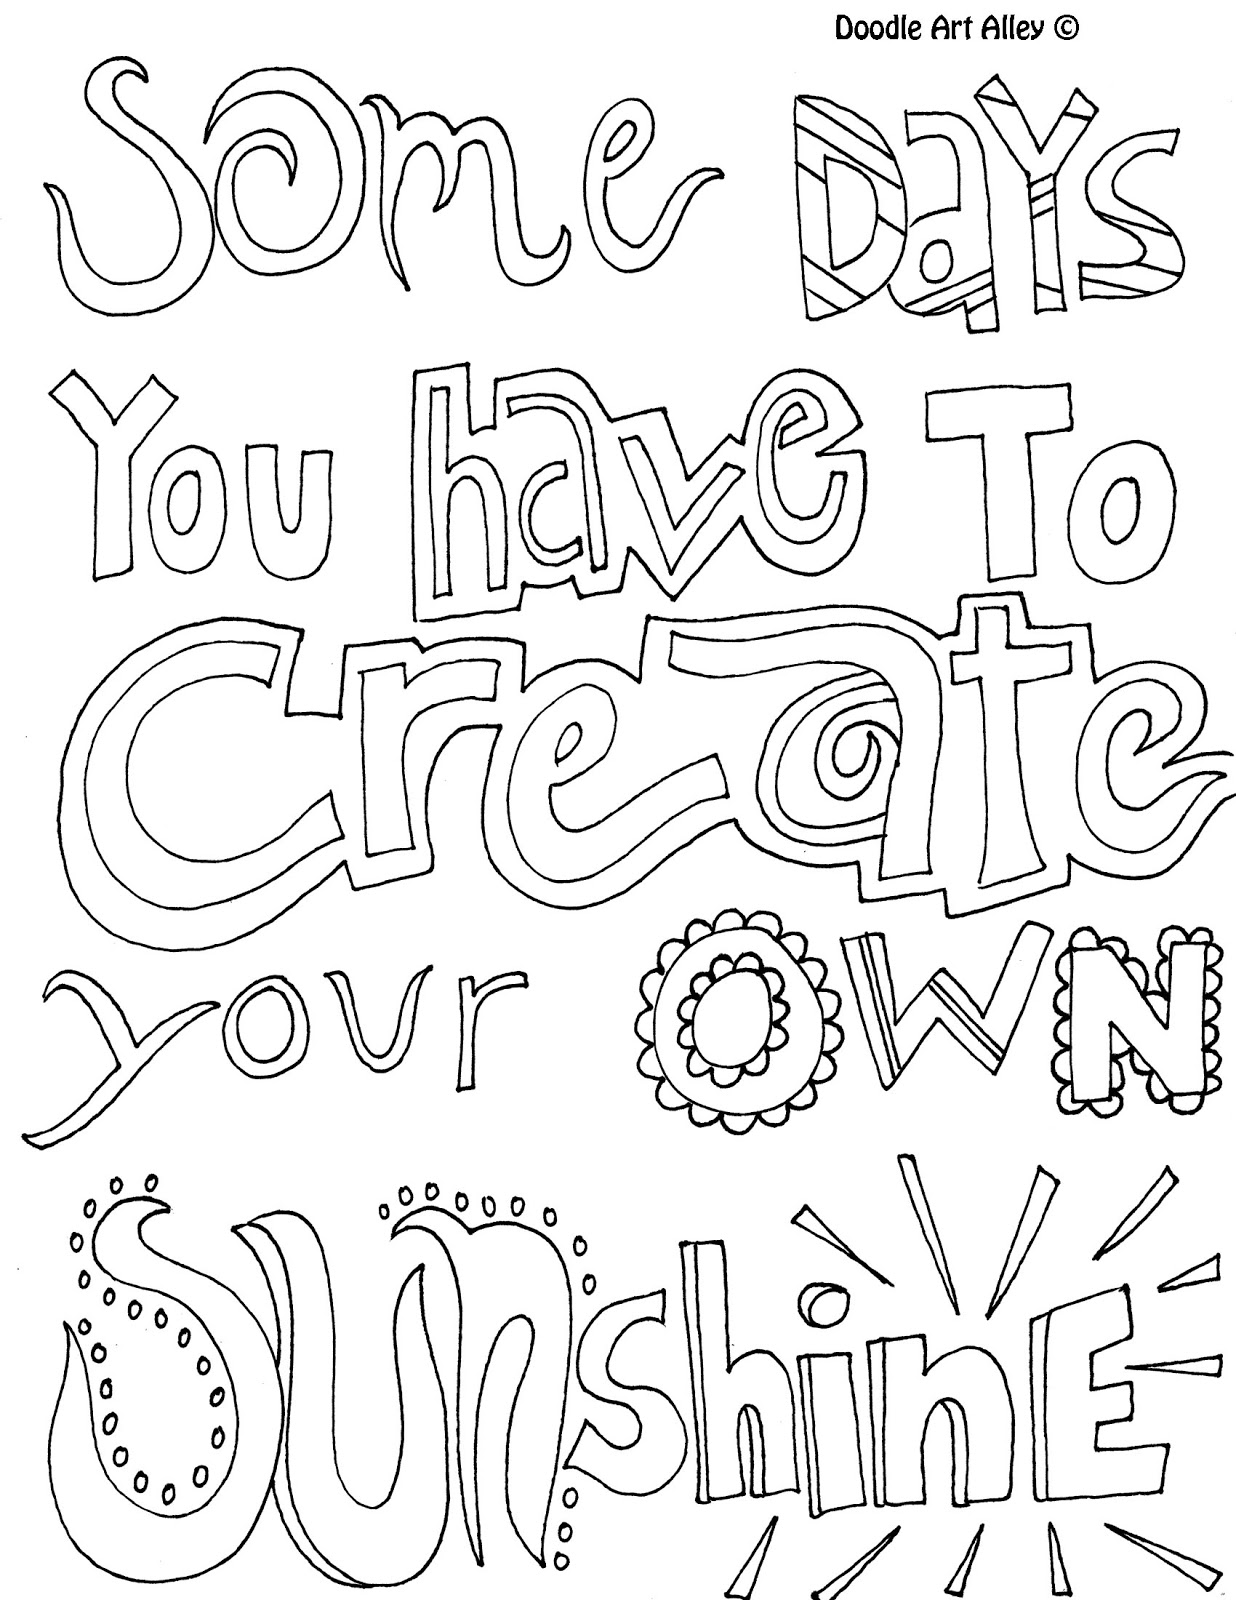 Inspirational Quotes Coloring Pages For Adults : Positive quotes coloring pages quotesgram